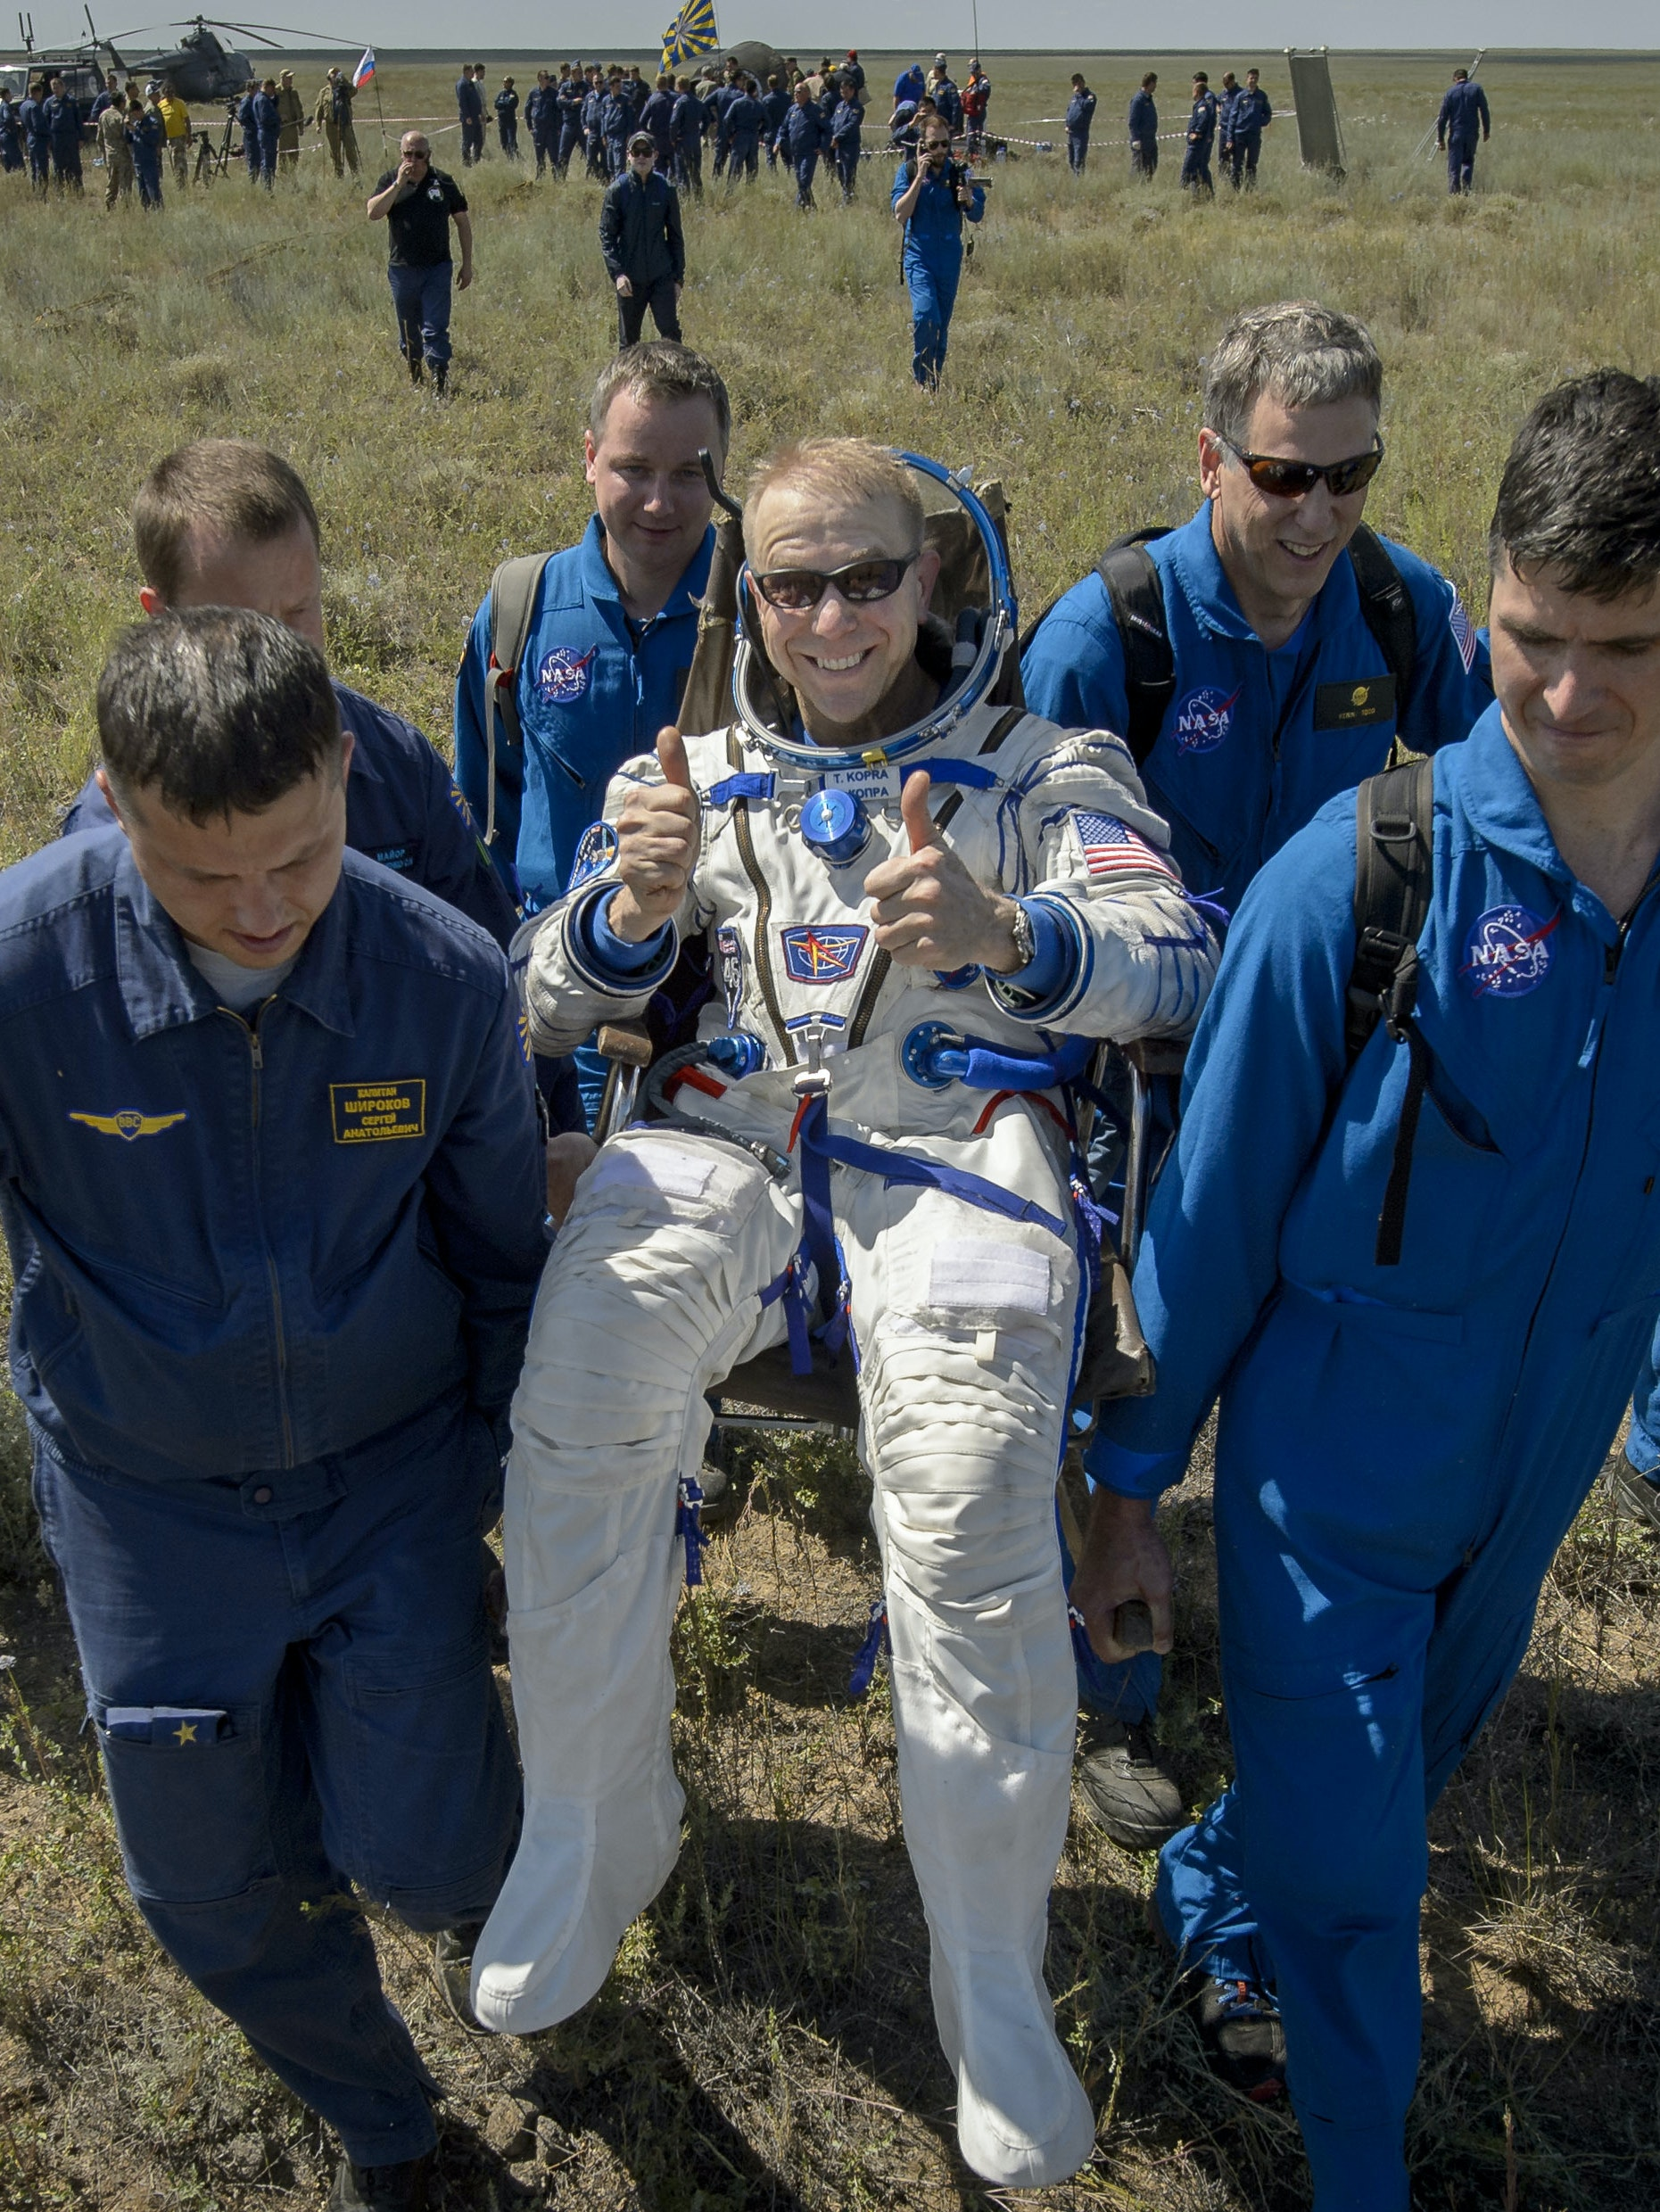 Tim Kopra of NASA is carried to a medical tent after he and Yuri Malenchenko of Roscosmos and Tim Peake of the European Space Agency landed in their Soyuz TMA-19M spacecraft in a remote area on June 18, 2016 near the town of Zhezkazgan, Kazakhstan. Kopra, Peake, and Malenchenko are returning after six months in space where they served as members of the Expedition 46 and 47 crews onboard the International Space Station.